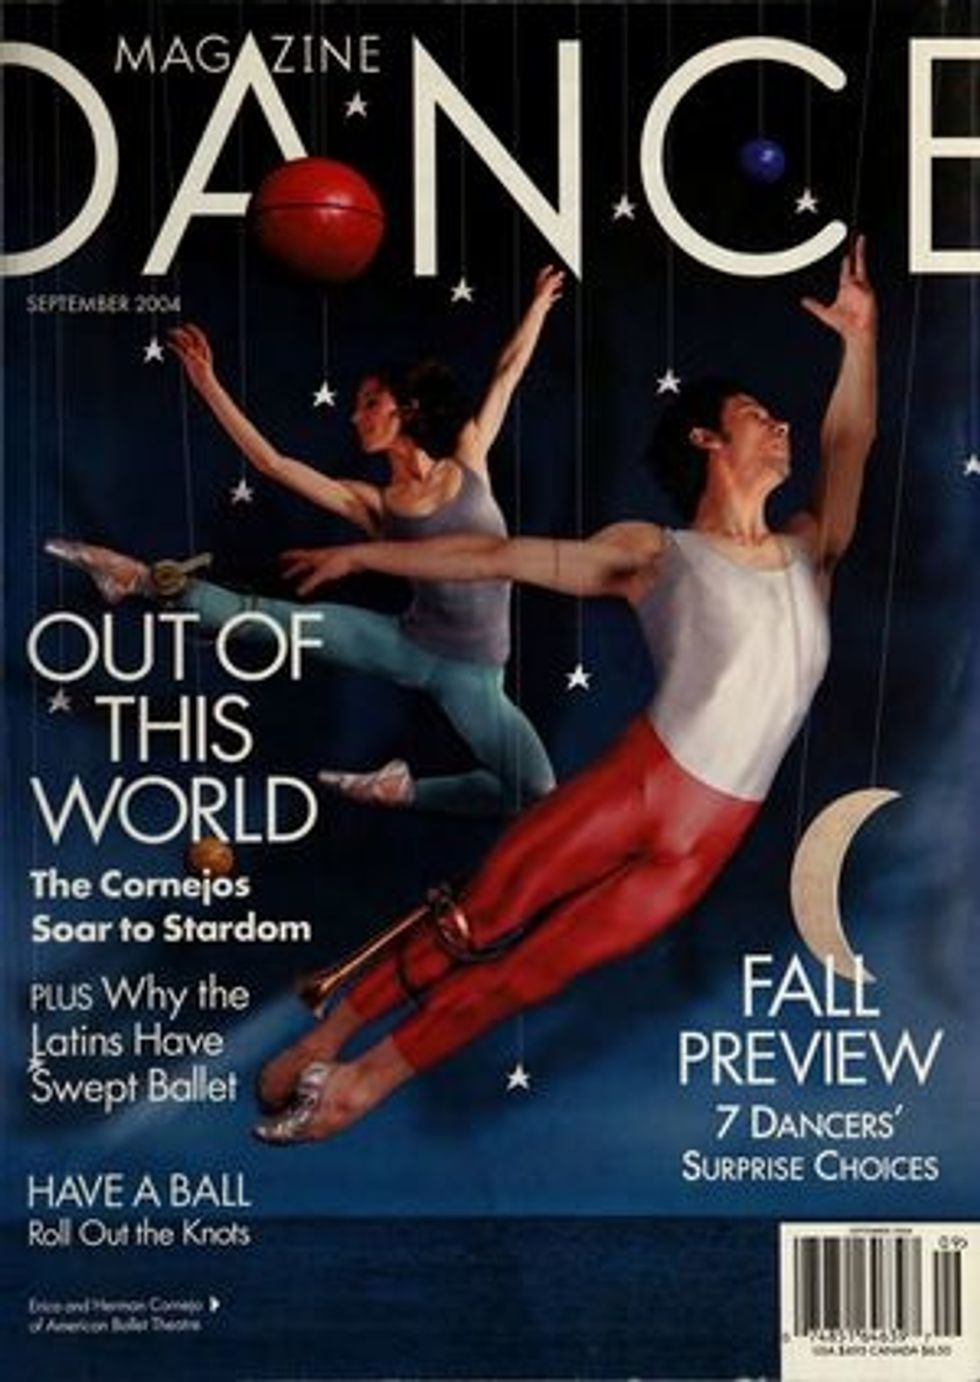 A Dance Magazine cover featuring the Cornejos leaping among illustrated planets and stars